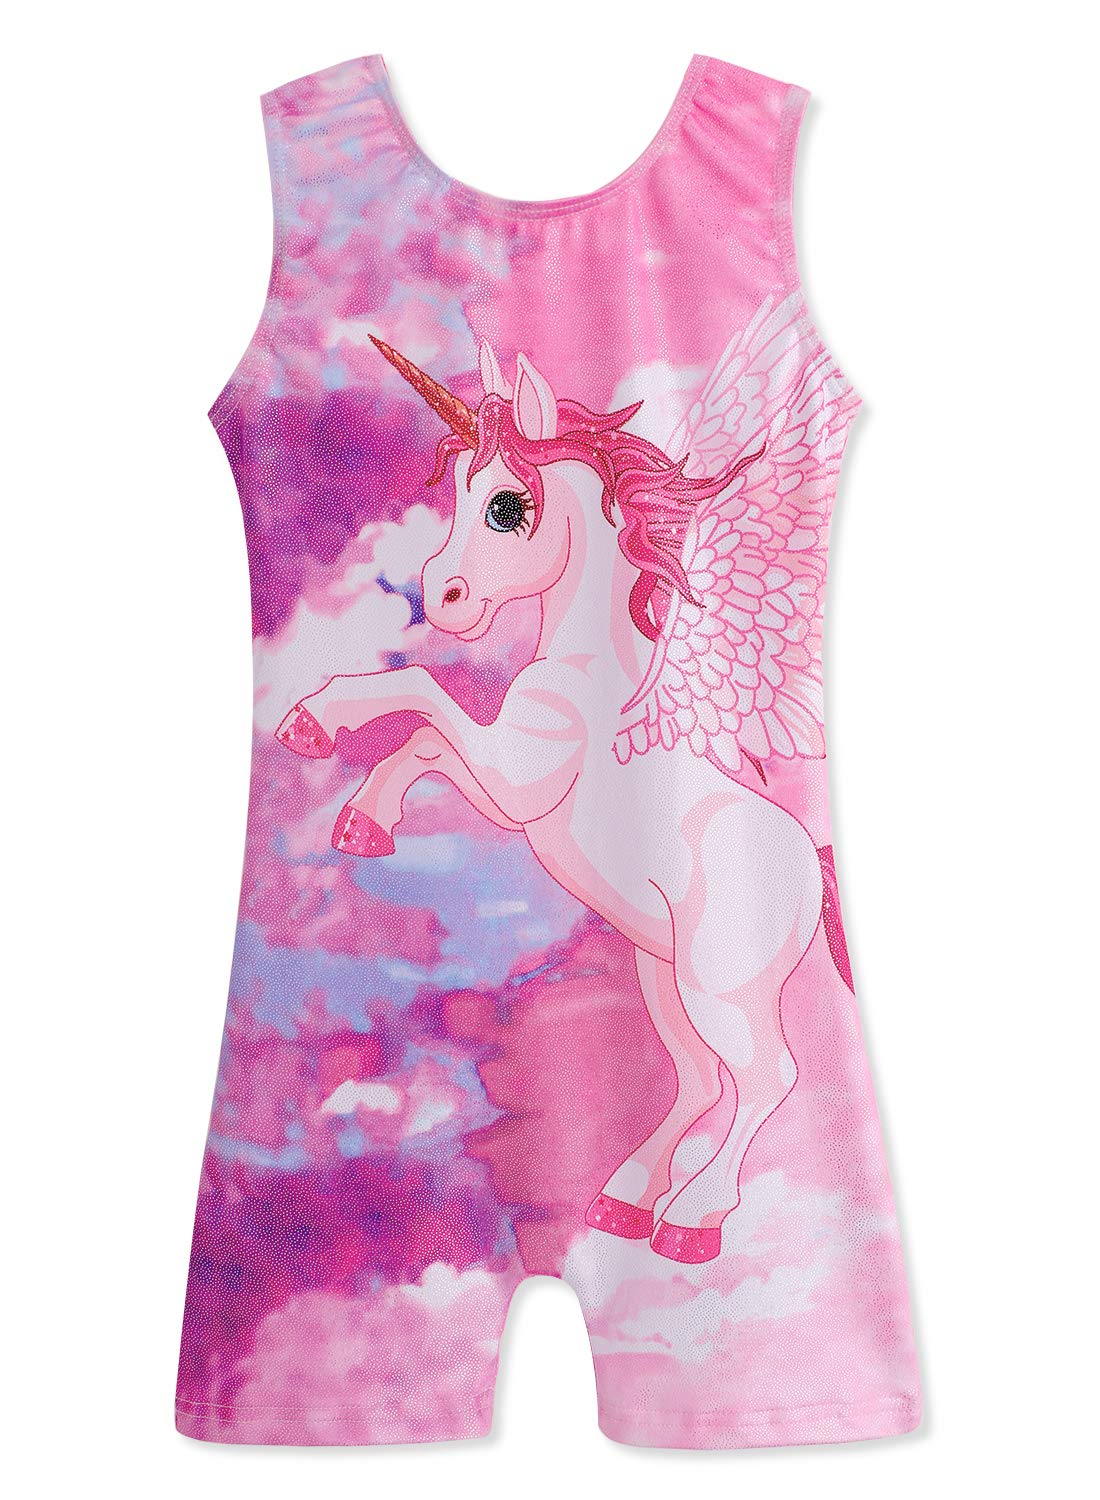 Gymnastics Leotards for Girls Biketards Sparkle Unicorn Pink and Blue (Pink Unicorn, 120(5-6Years)) by DAXIANG